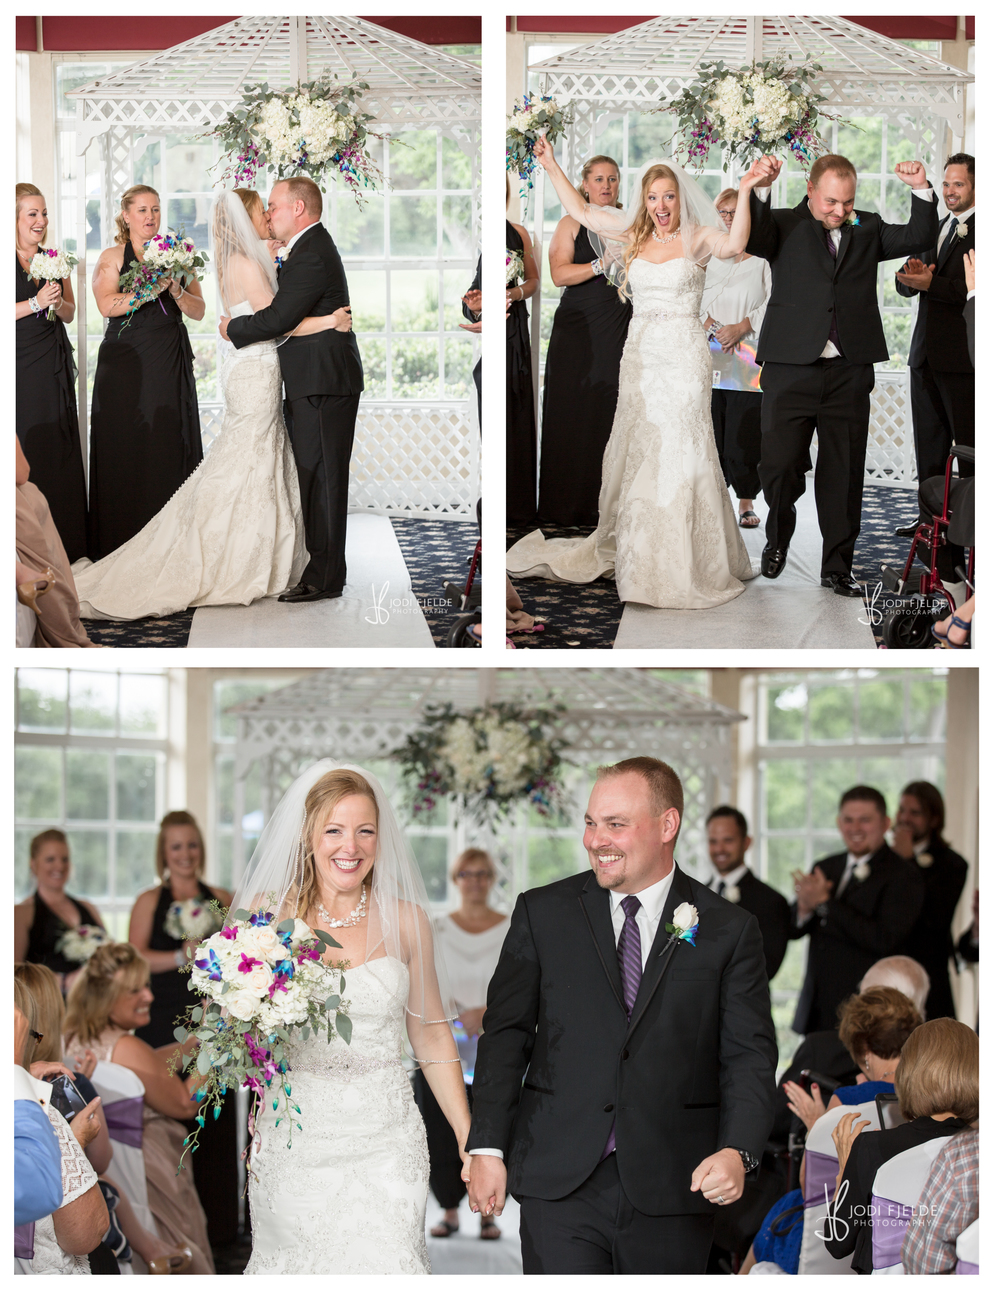 Morikami_Delray_Beach_Golf_Club_Wedding_Jenna & Brian 22.jpg